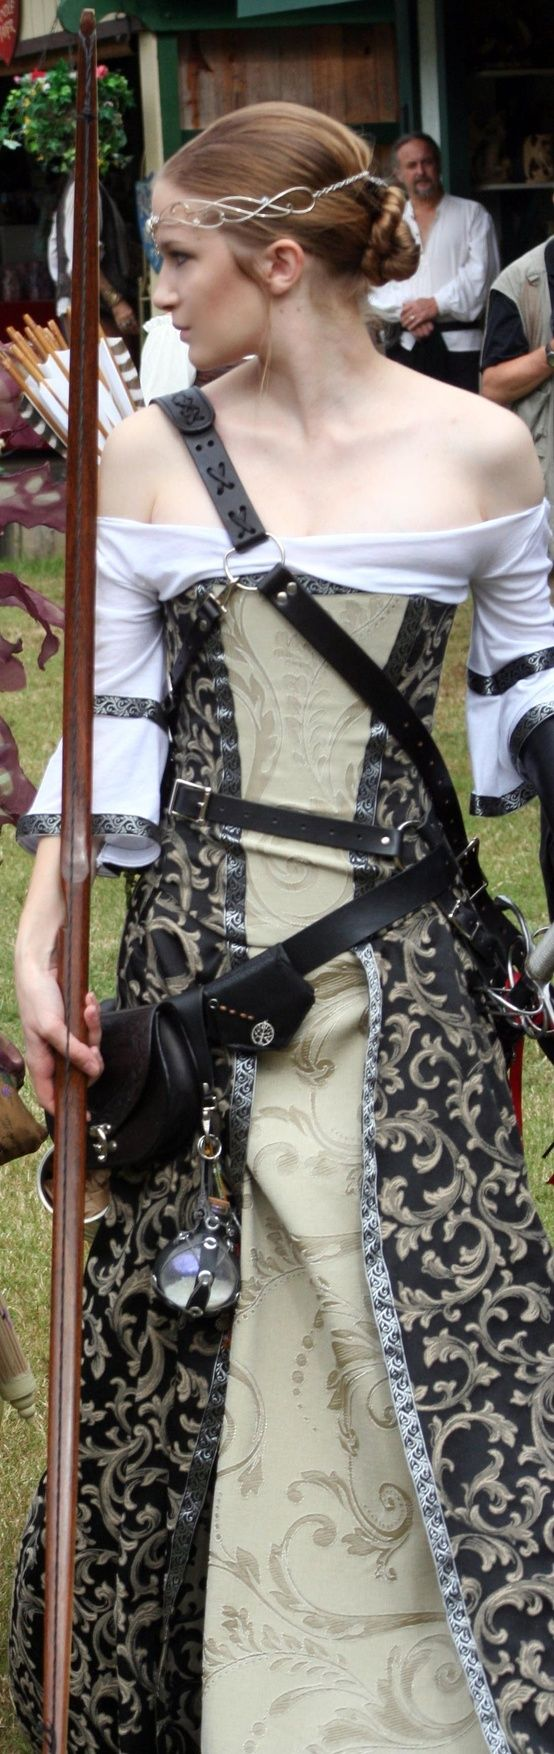 that quiver belt combo oh man.